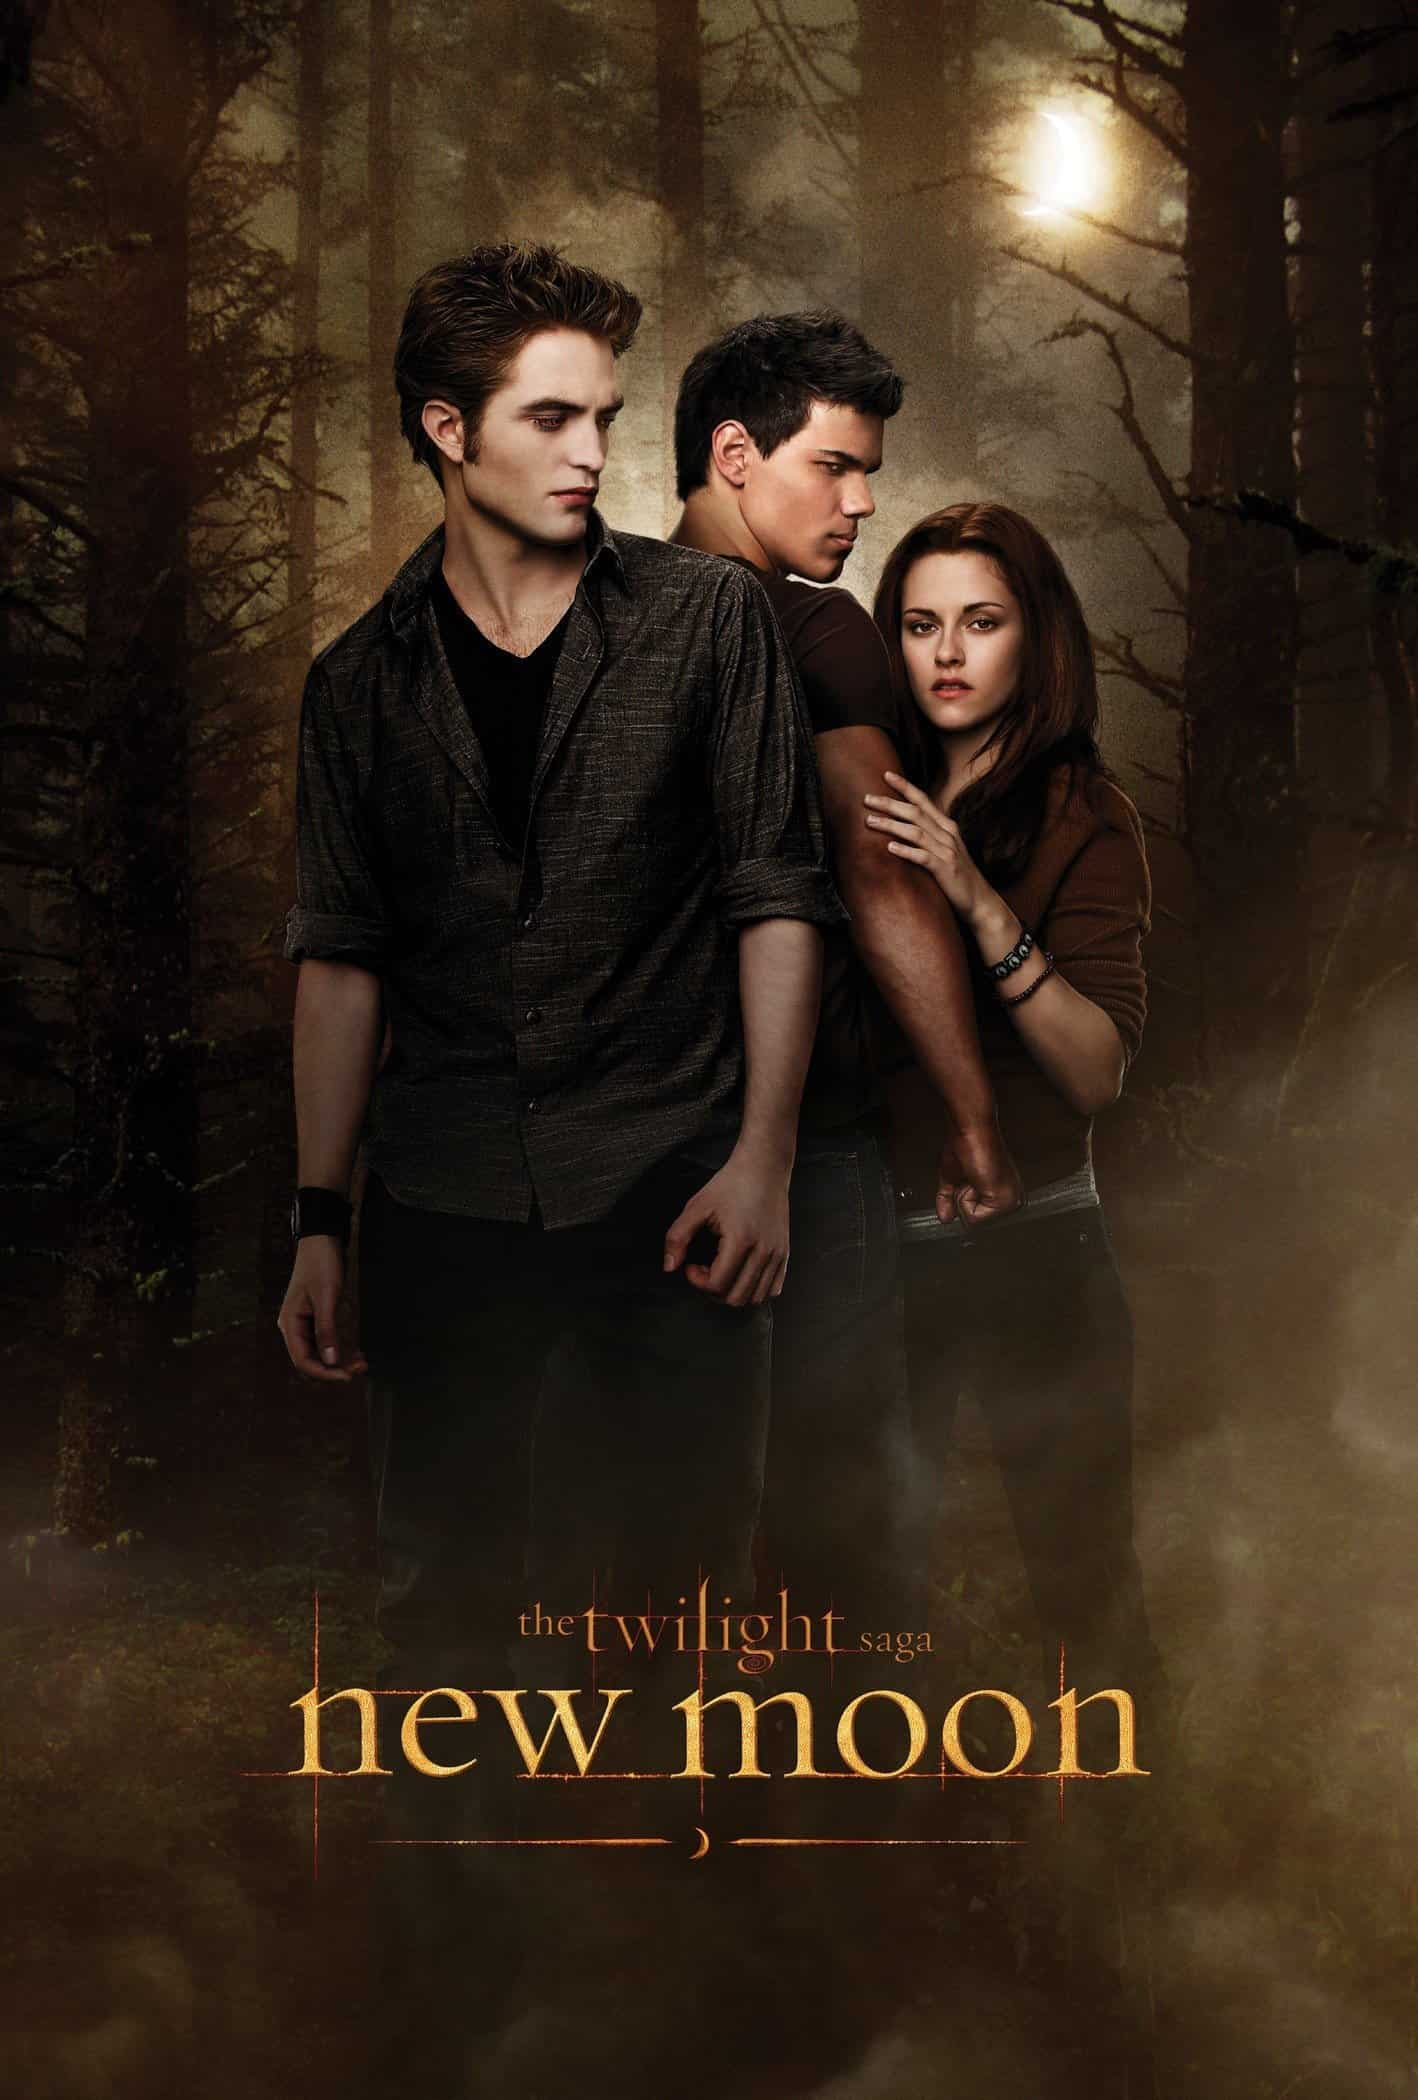 The Twilight Saga: New Moon, 2009